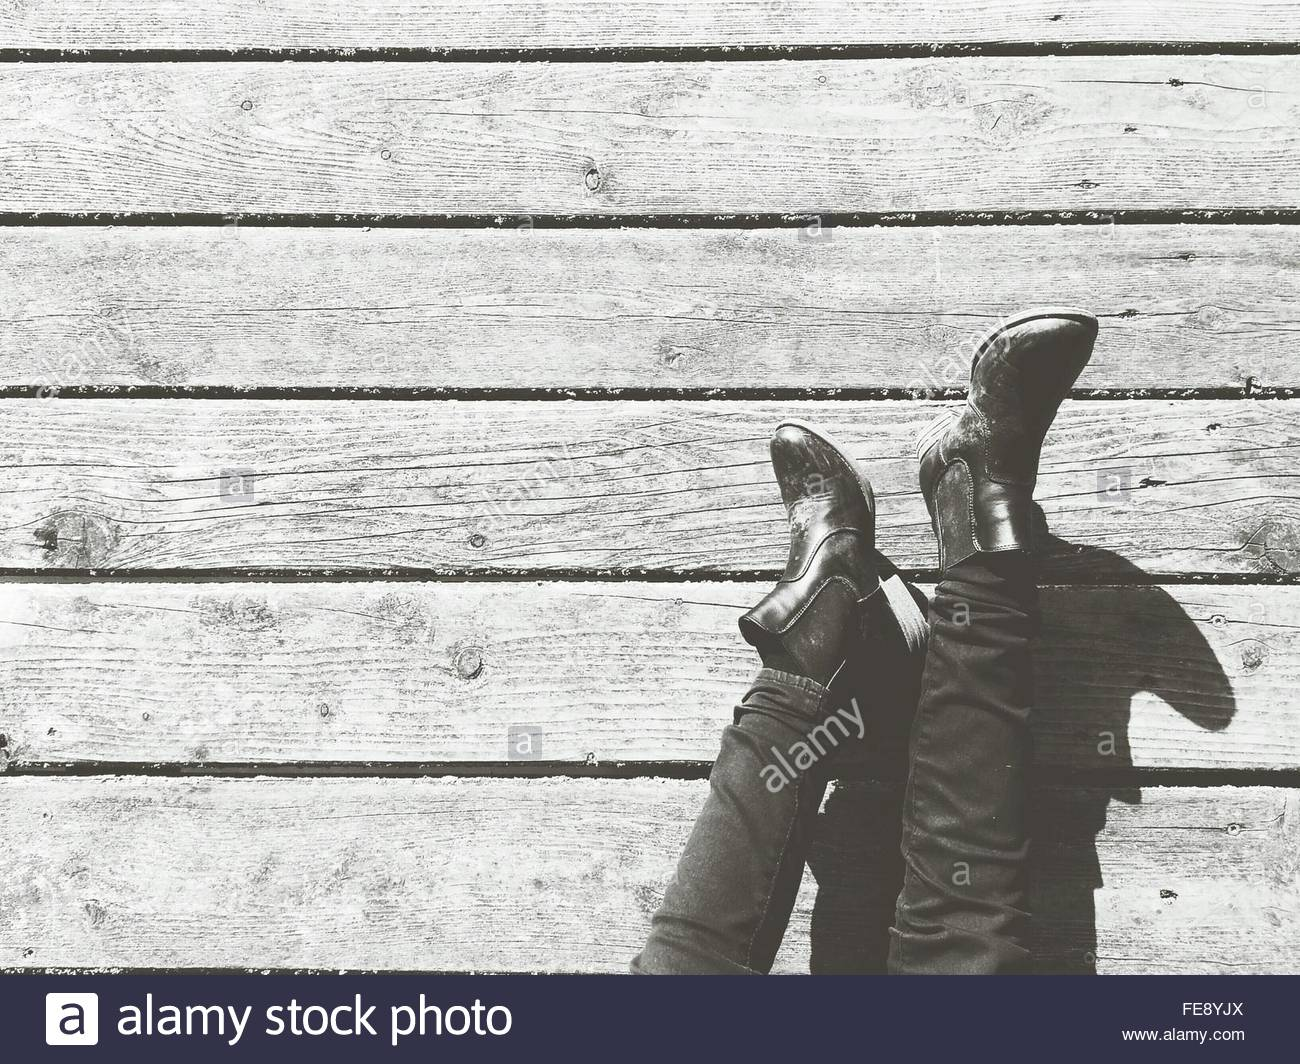 Low Section Of Man Relaxing On Wood Paneled Floor - Stock Image